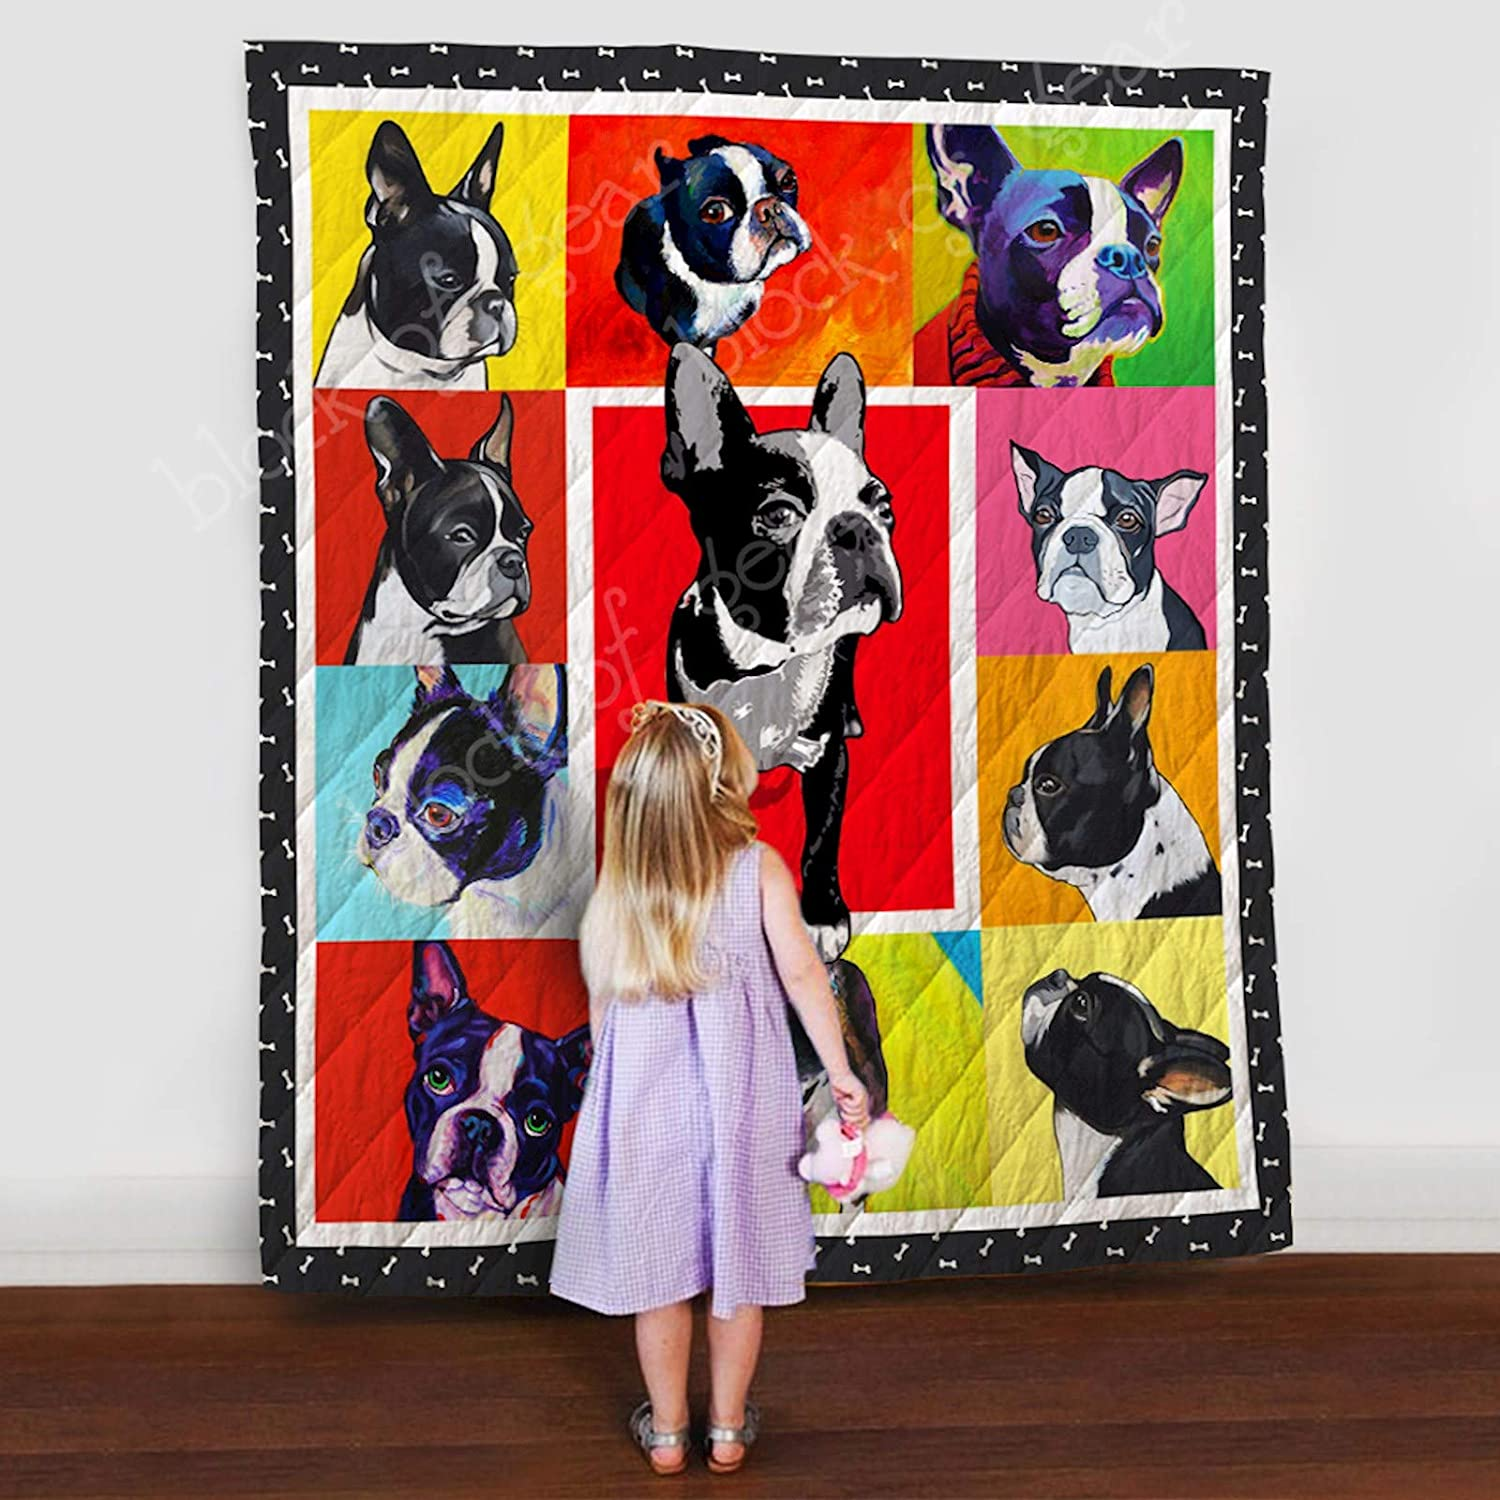 Boston Terrier Quilt Th564b, Queen All-Season Quilts Comforters with Reversible Cotton King Queen Twin Size - Best Decorative Quilts-Unique Quilted for Gifts